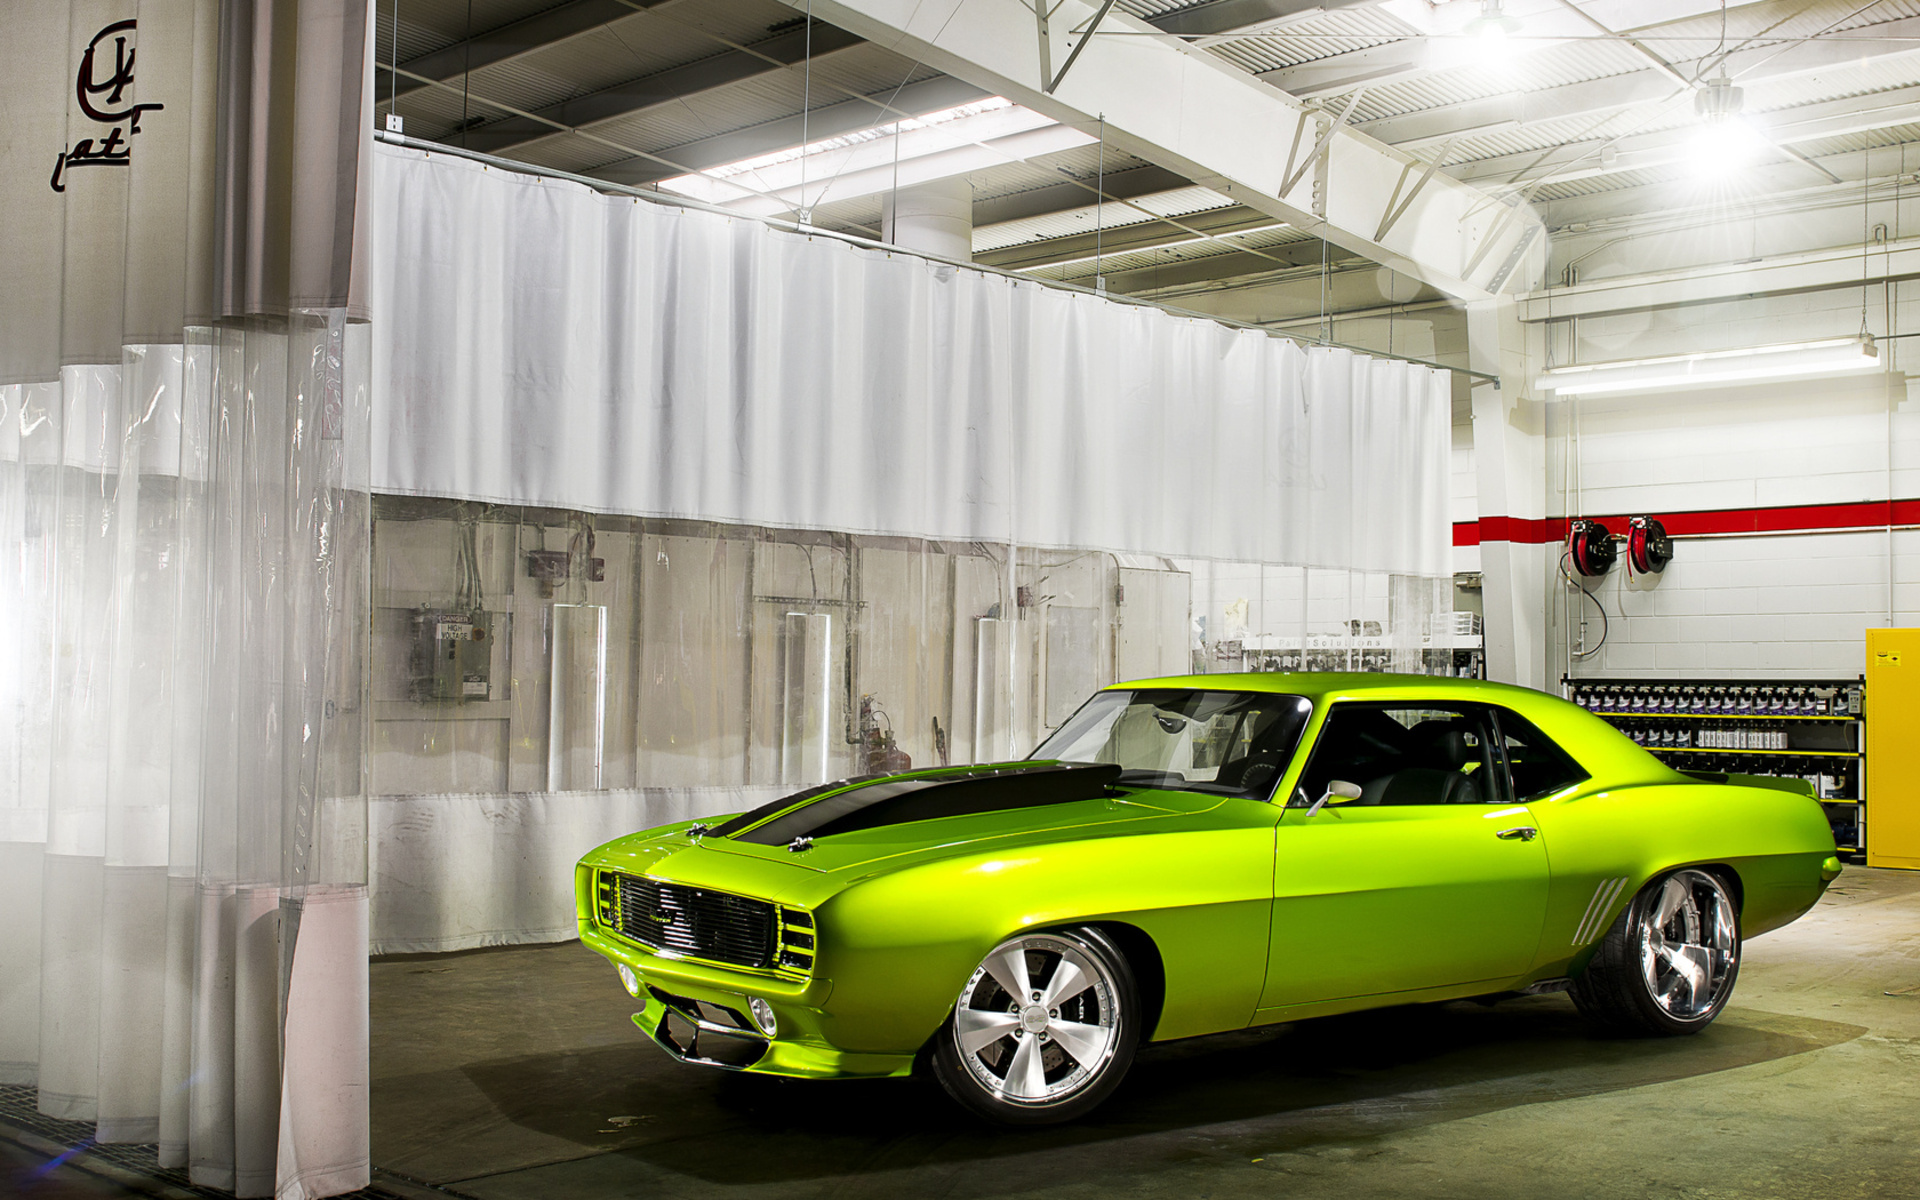 Vehicles Cars Chevy Chevrolet Camaro Hot Rods Muscle Classic Wallpaper